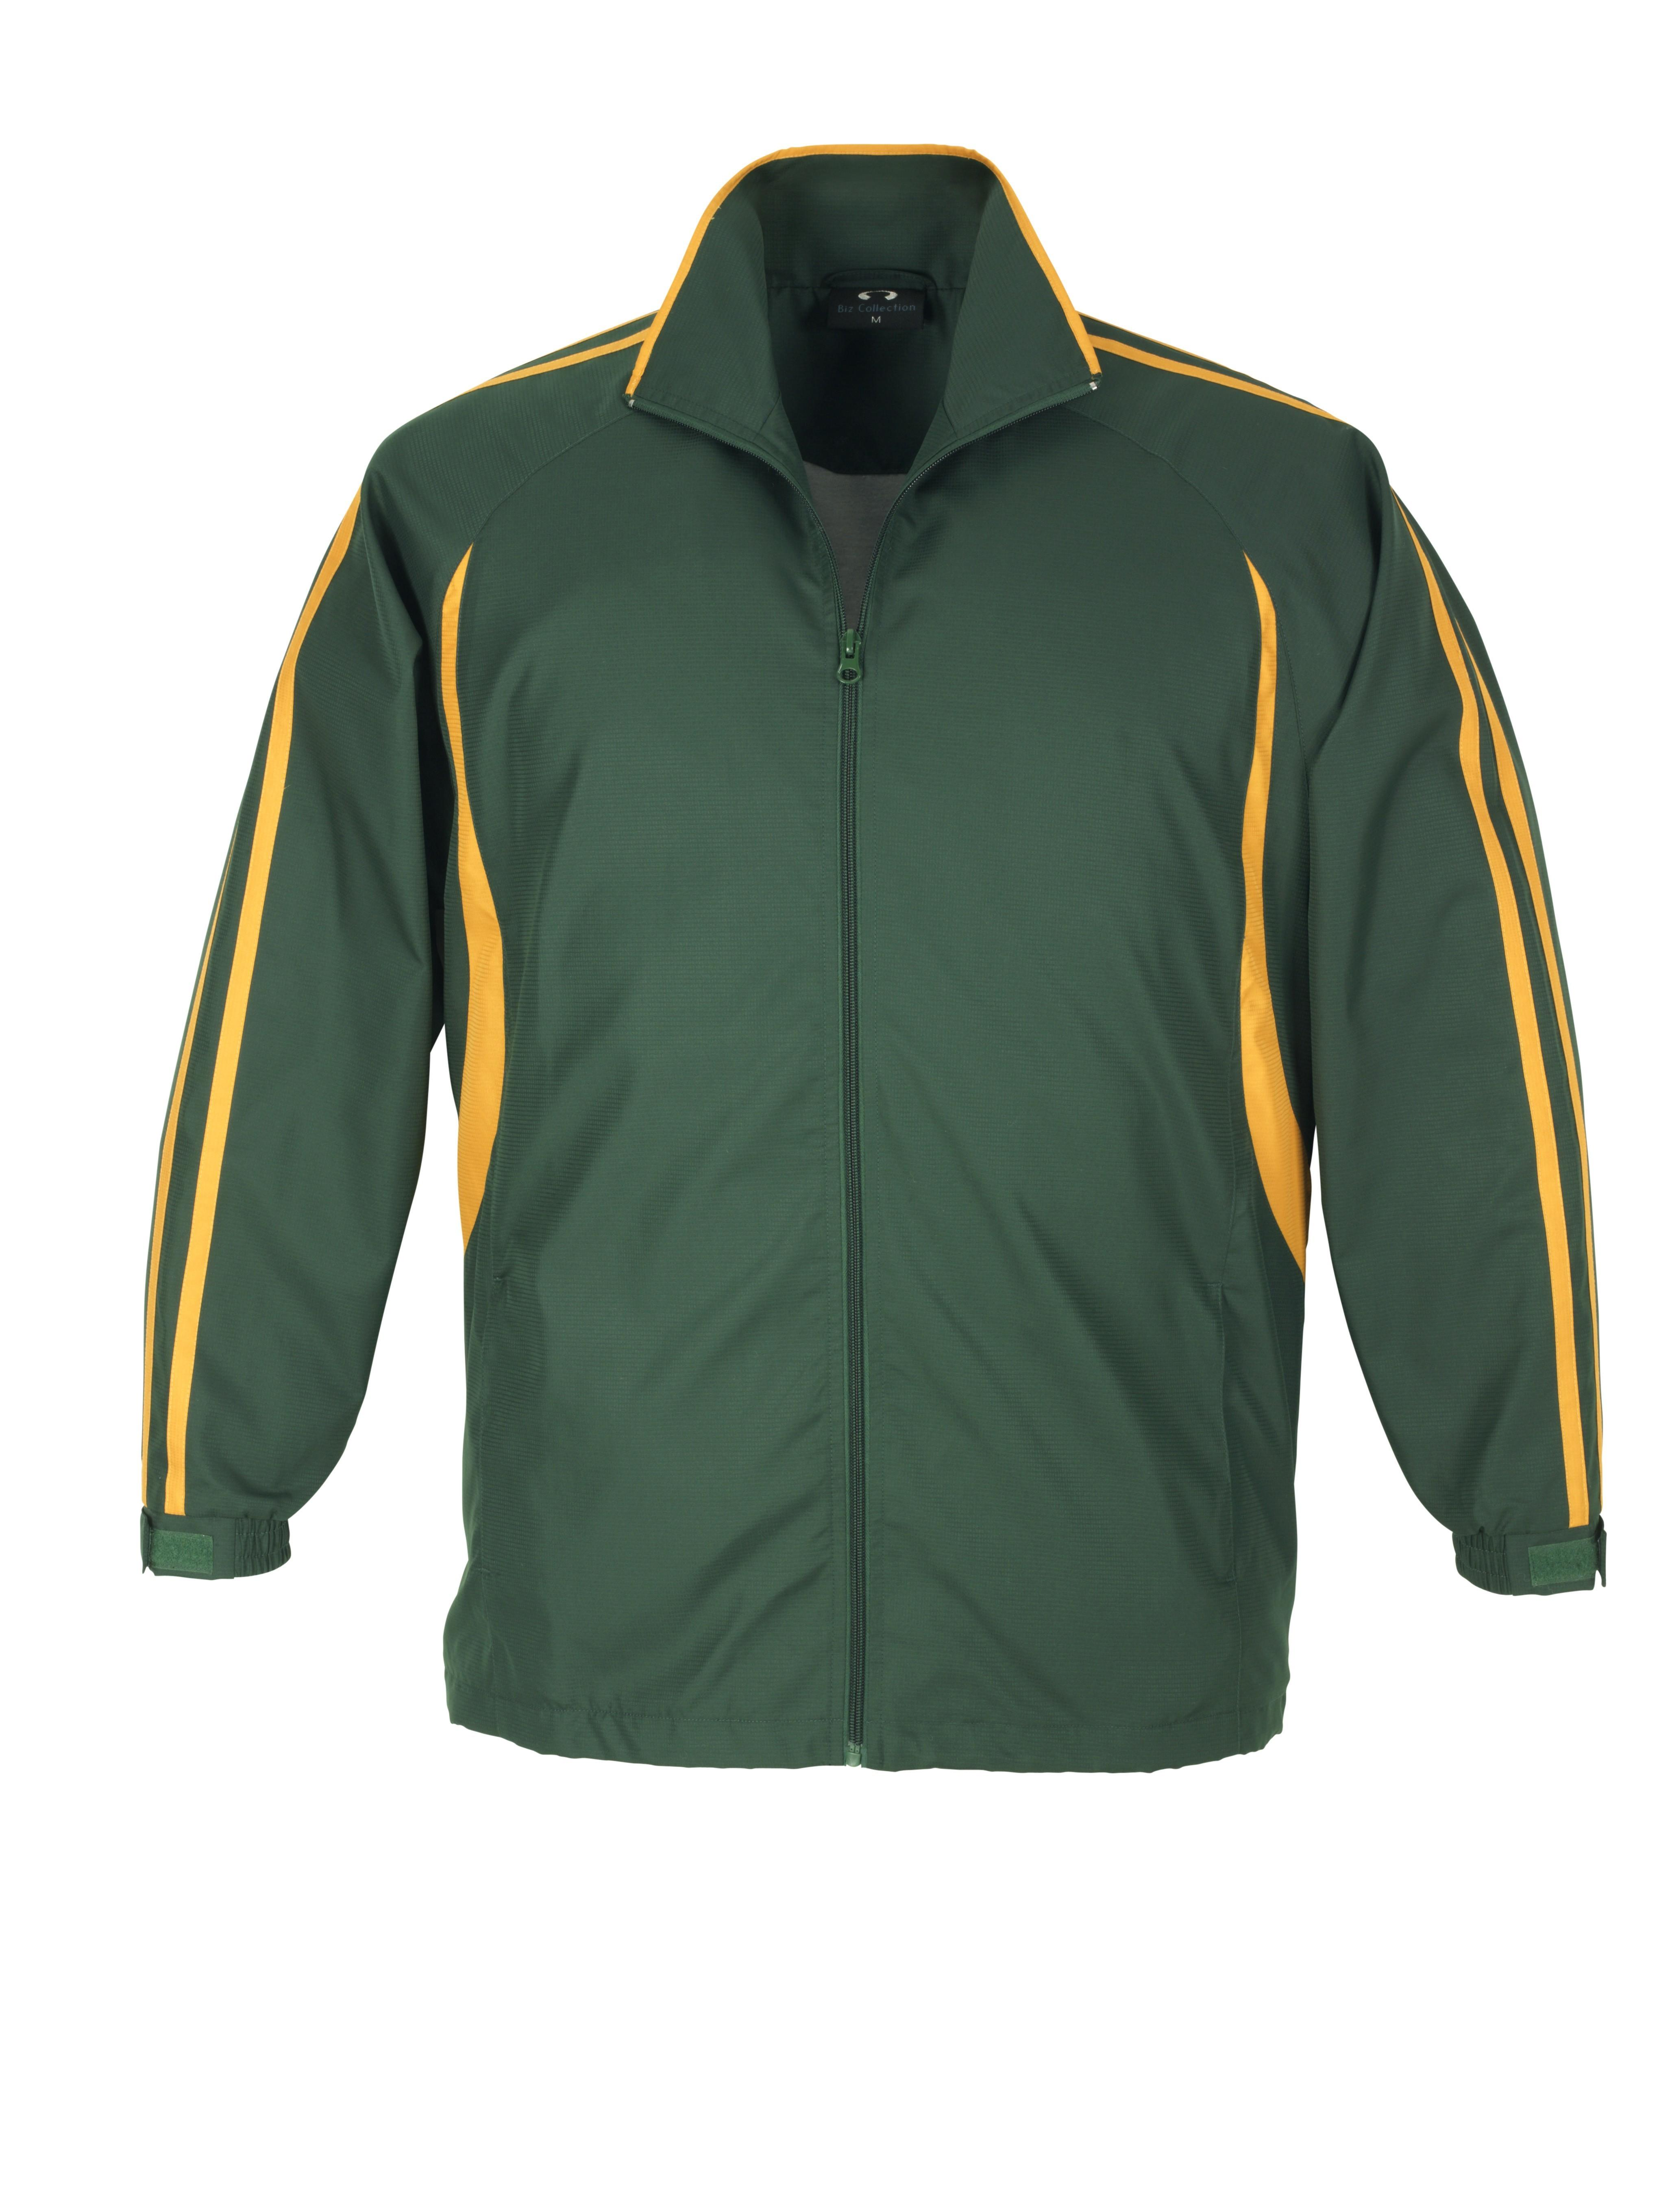 Flash Unisex Track Top - Green Gold Only